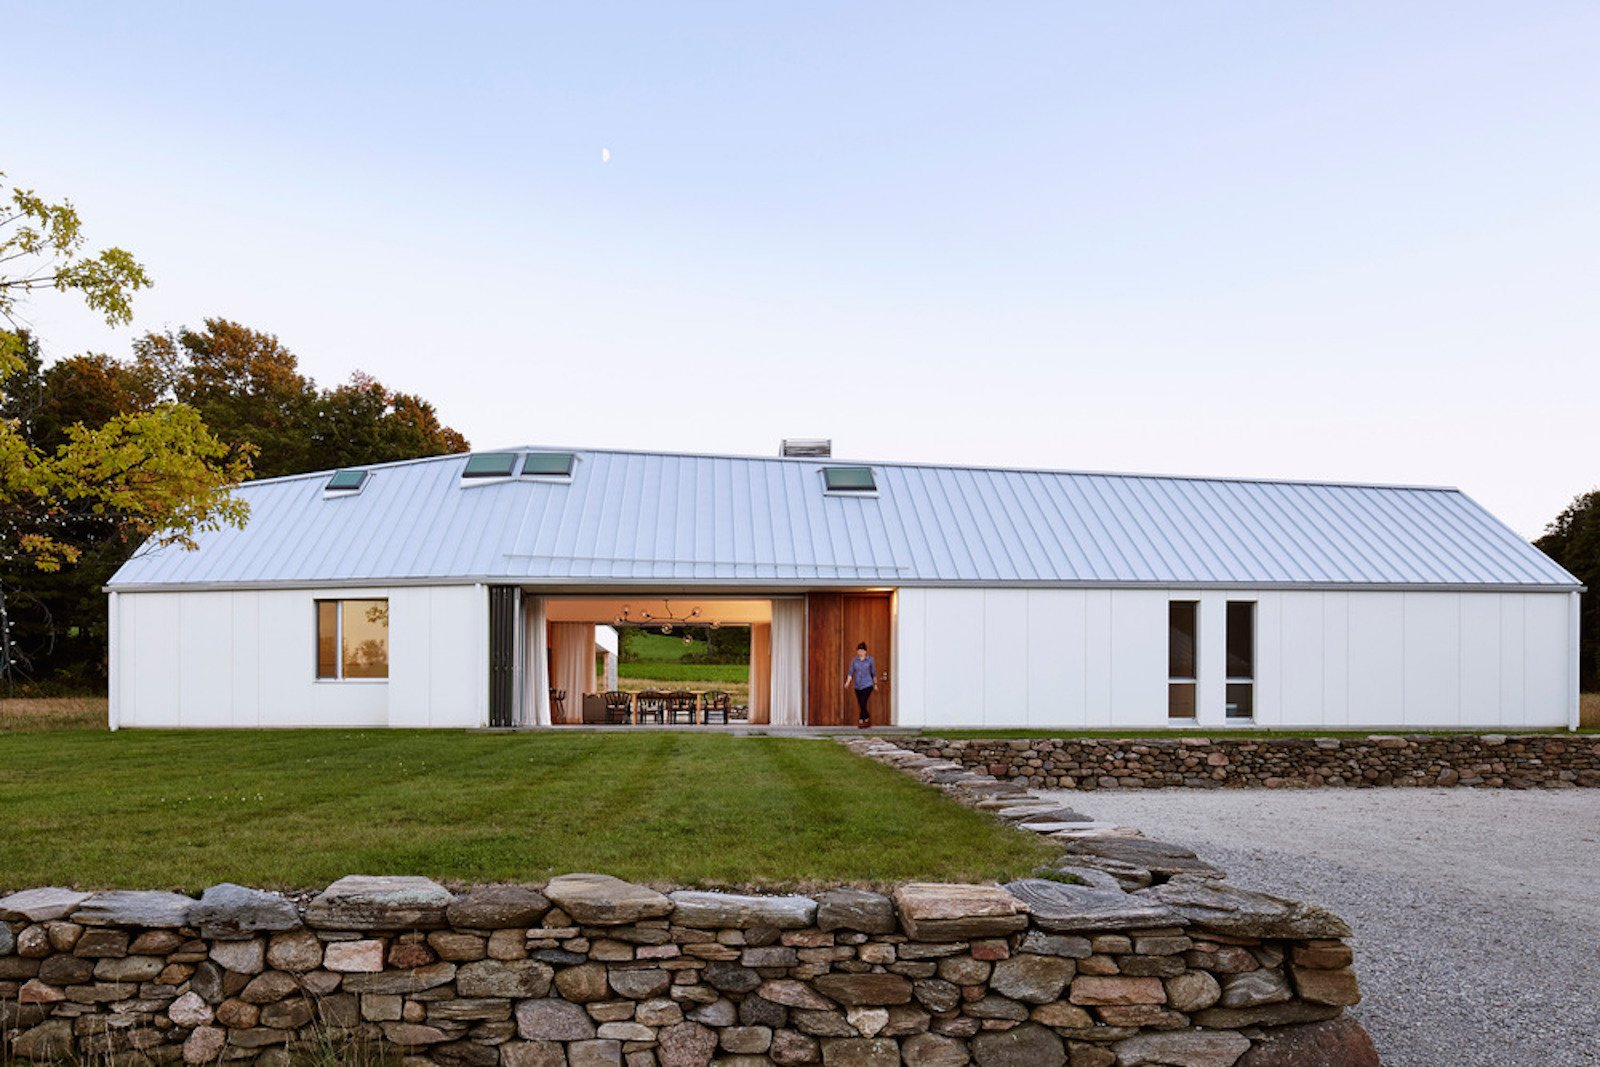 A LEED Gold Weekend Home Embraces the Ontario Landscape